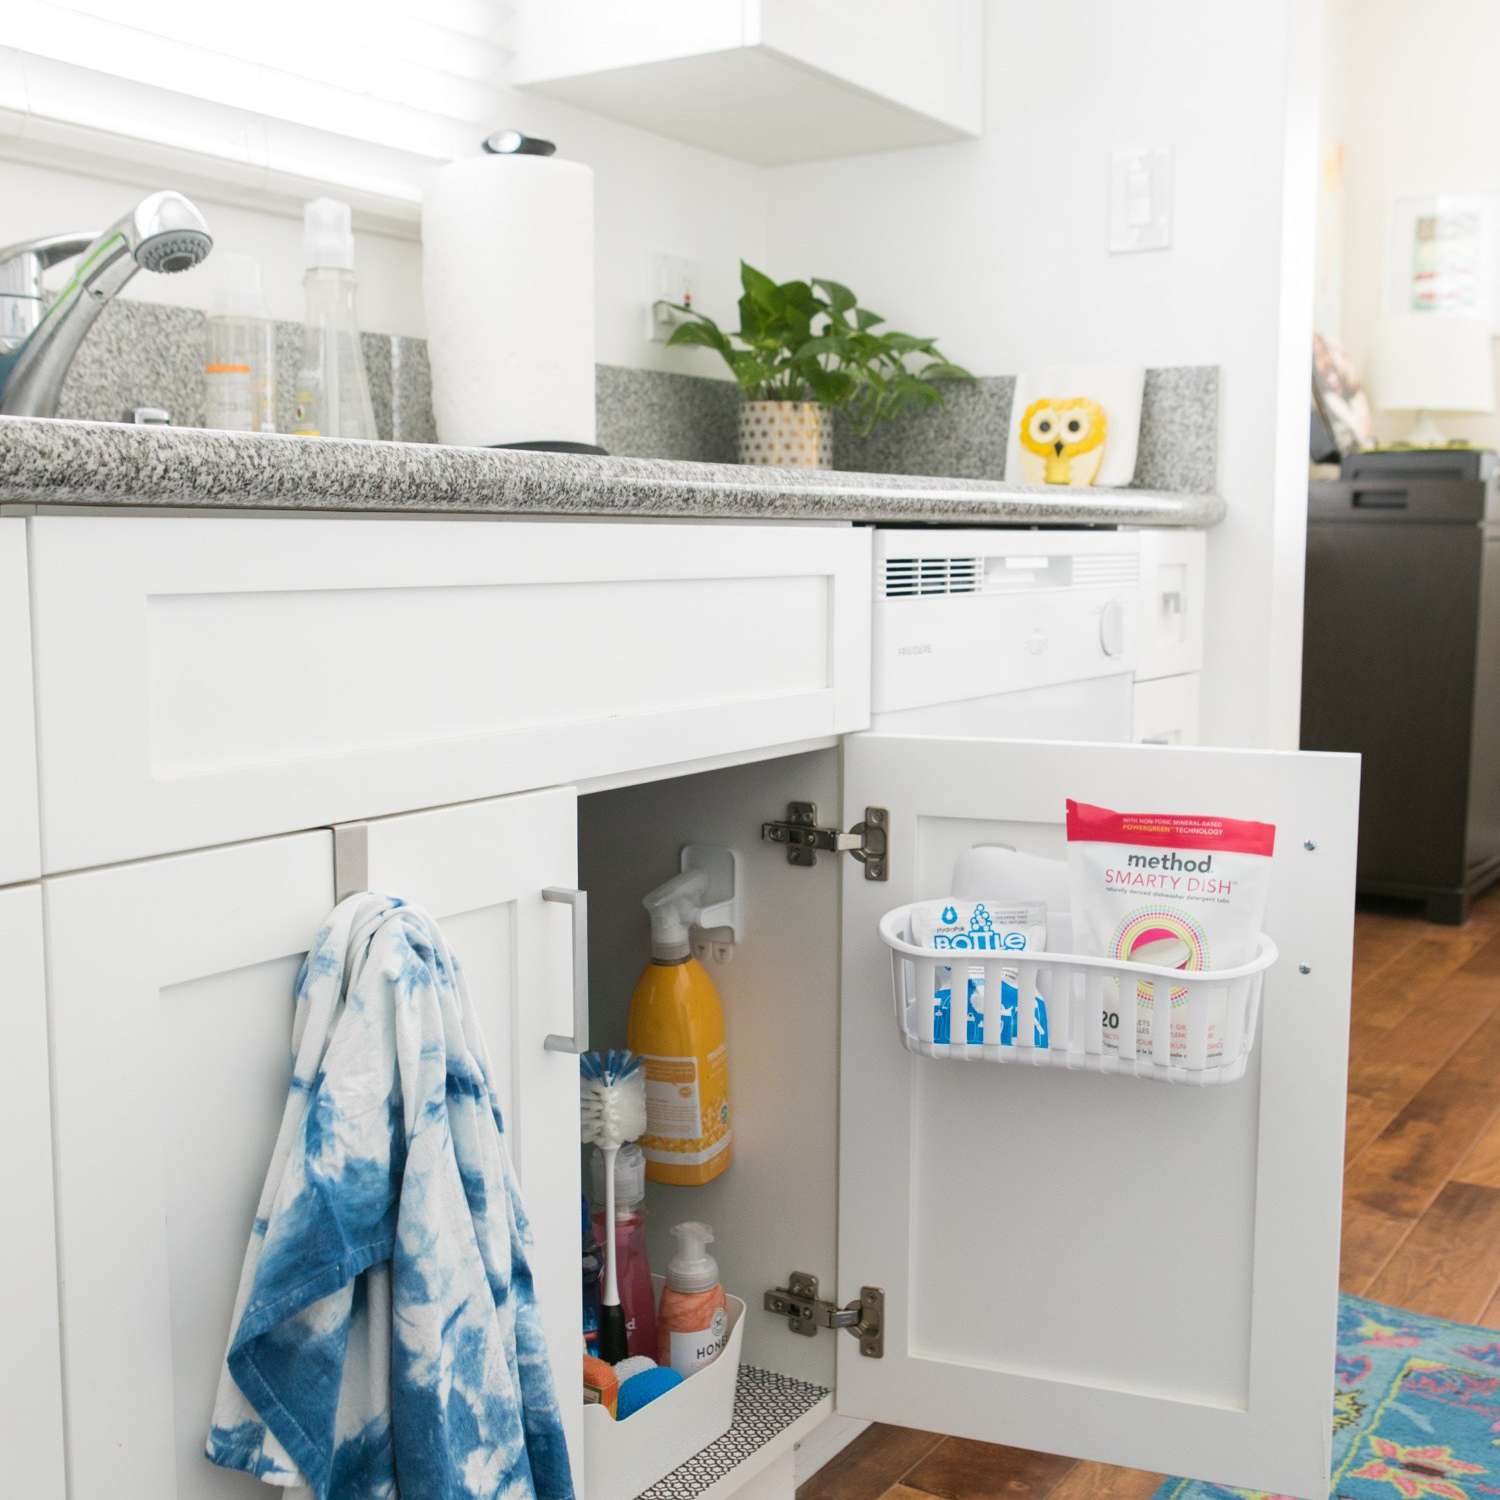 Products stored under a kitchen sink.